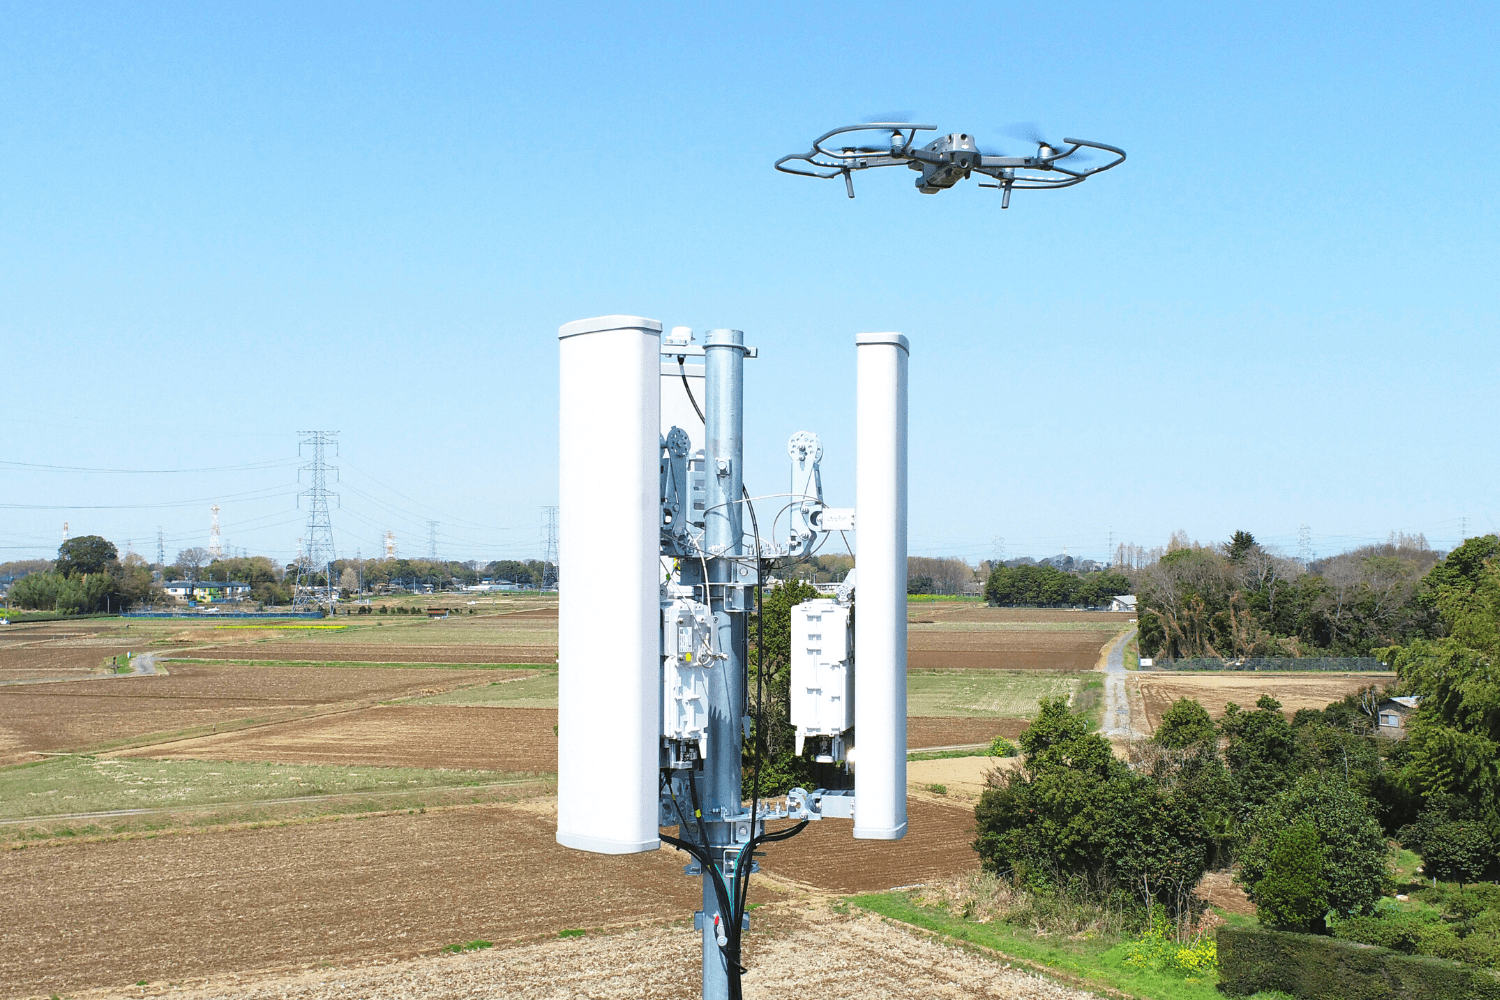 Rakuten Mobile deploys drones to help accelerate base station rollout